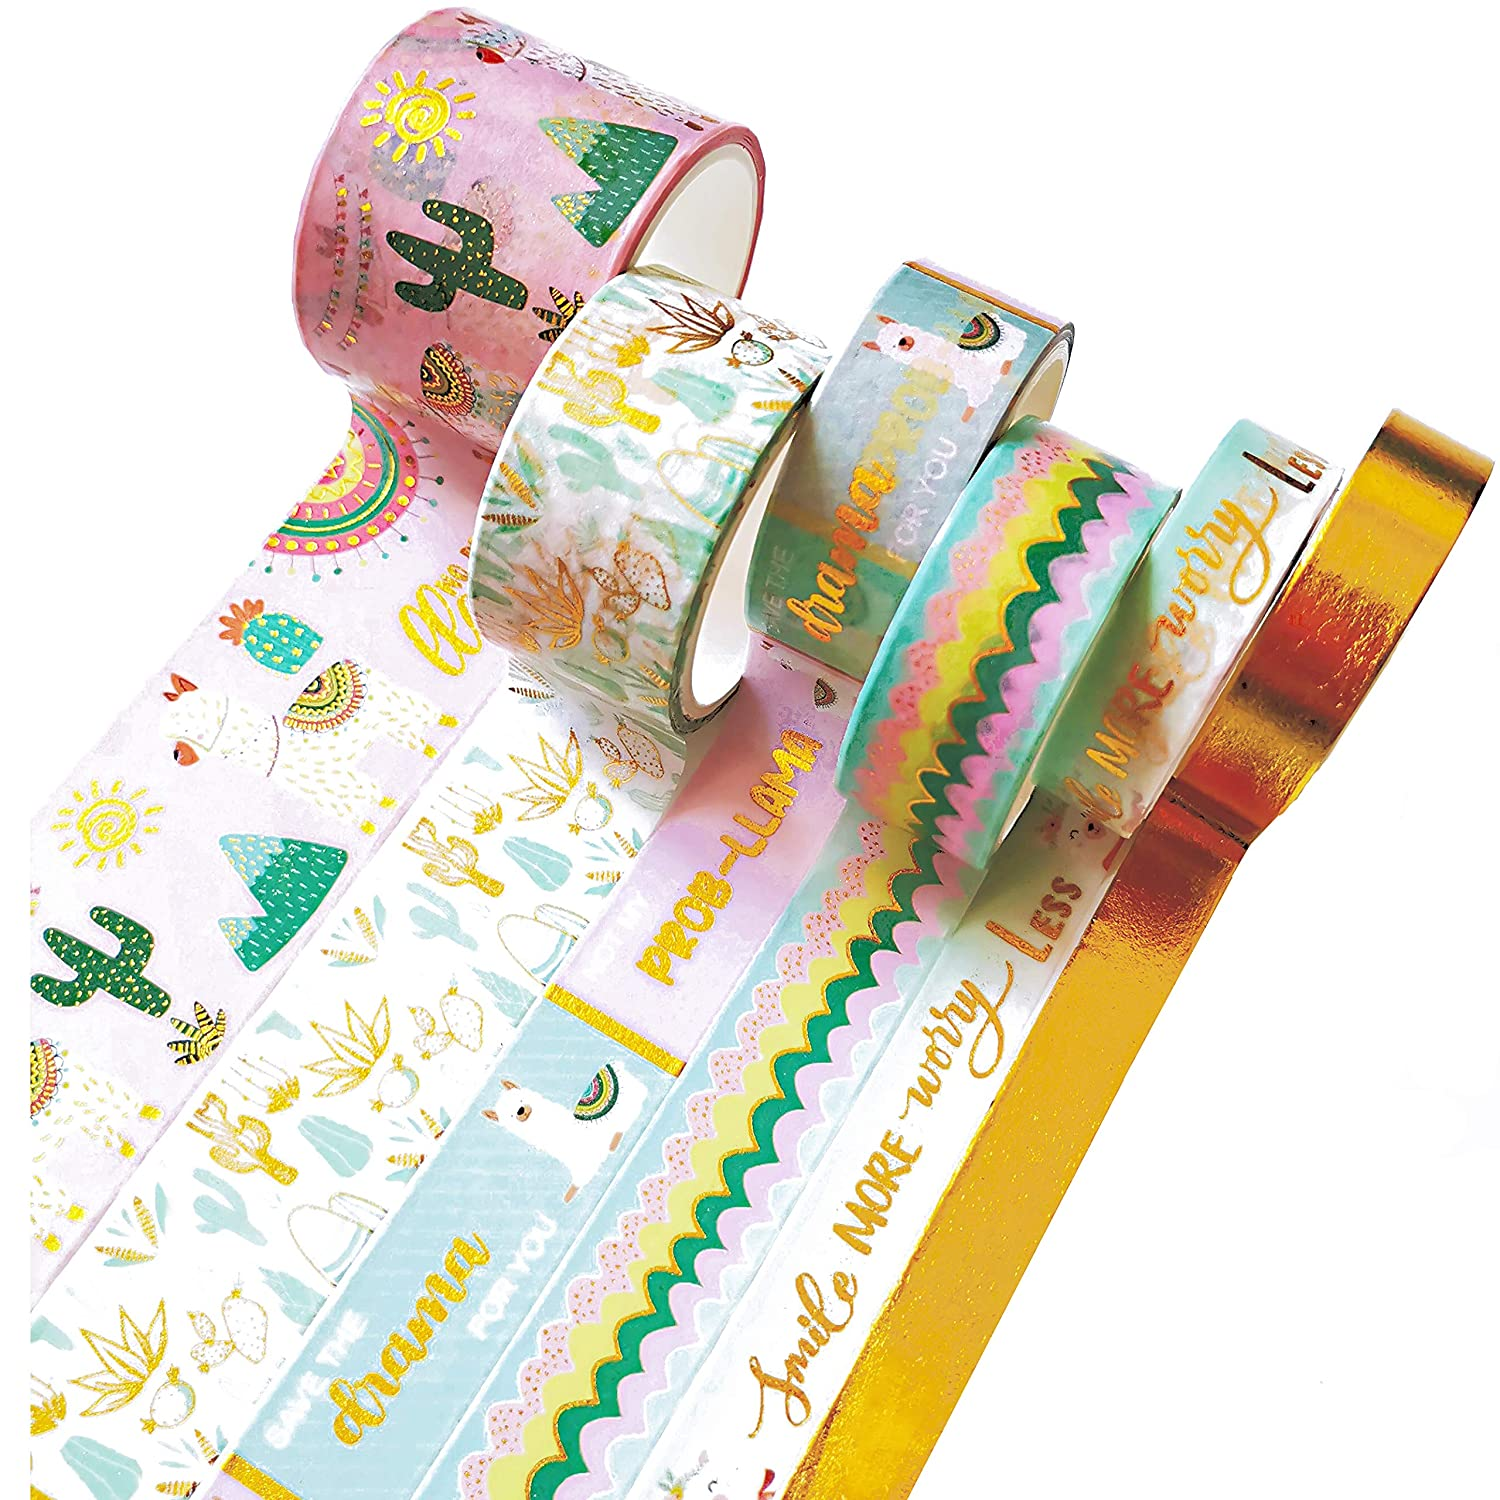 6 Rolls Washi Tape Set Max 81% OFF Cute Word Gold Foil Max 68% OFF Plant Animal Flower